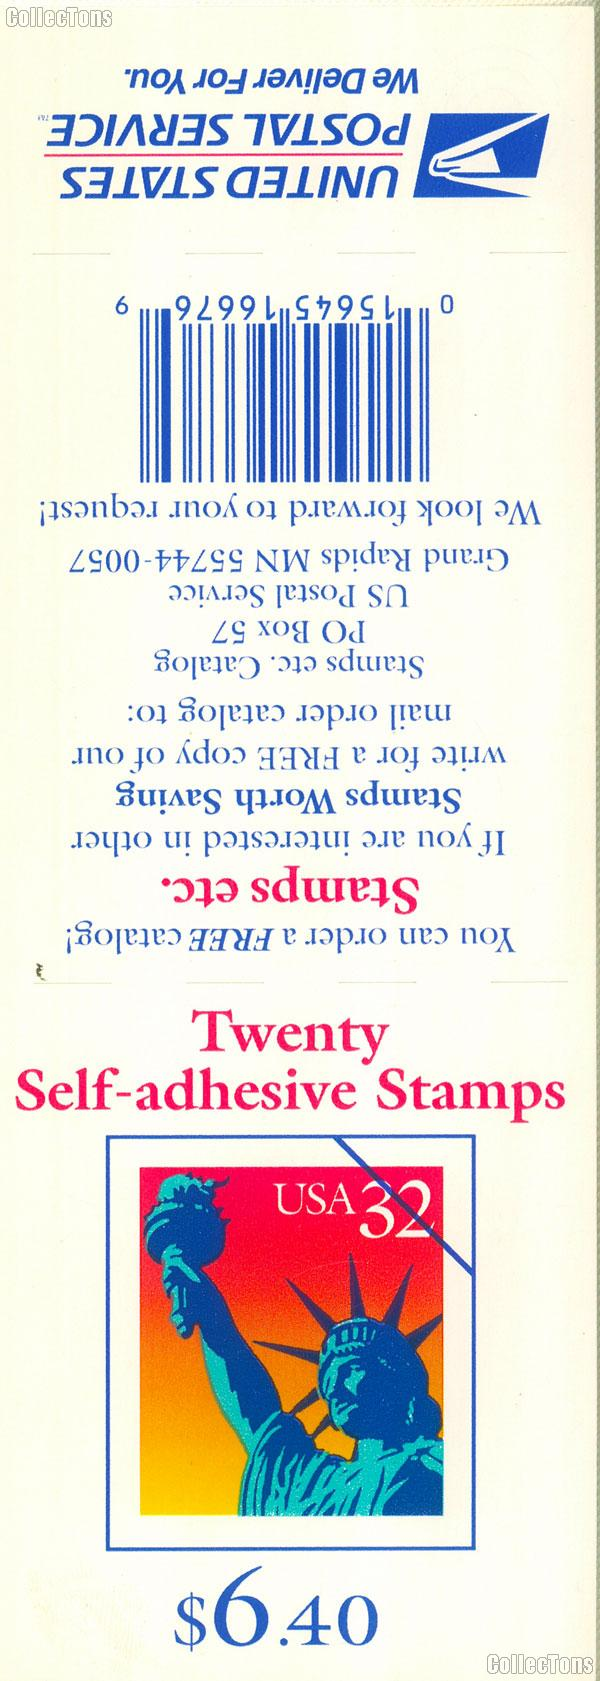 1997 Statue of Liberty 32 Cent US Postage Stamp Unused Booklet of 20 Scott #3122a